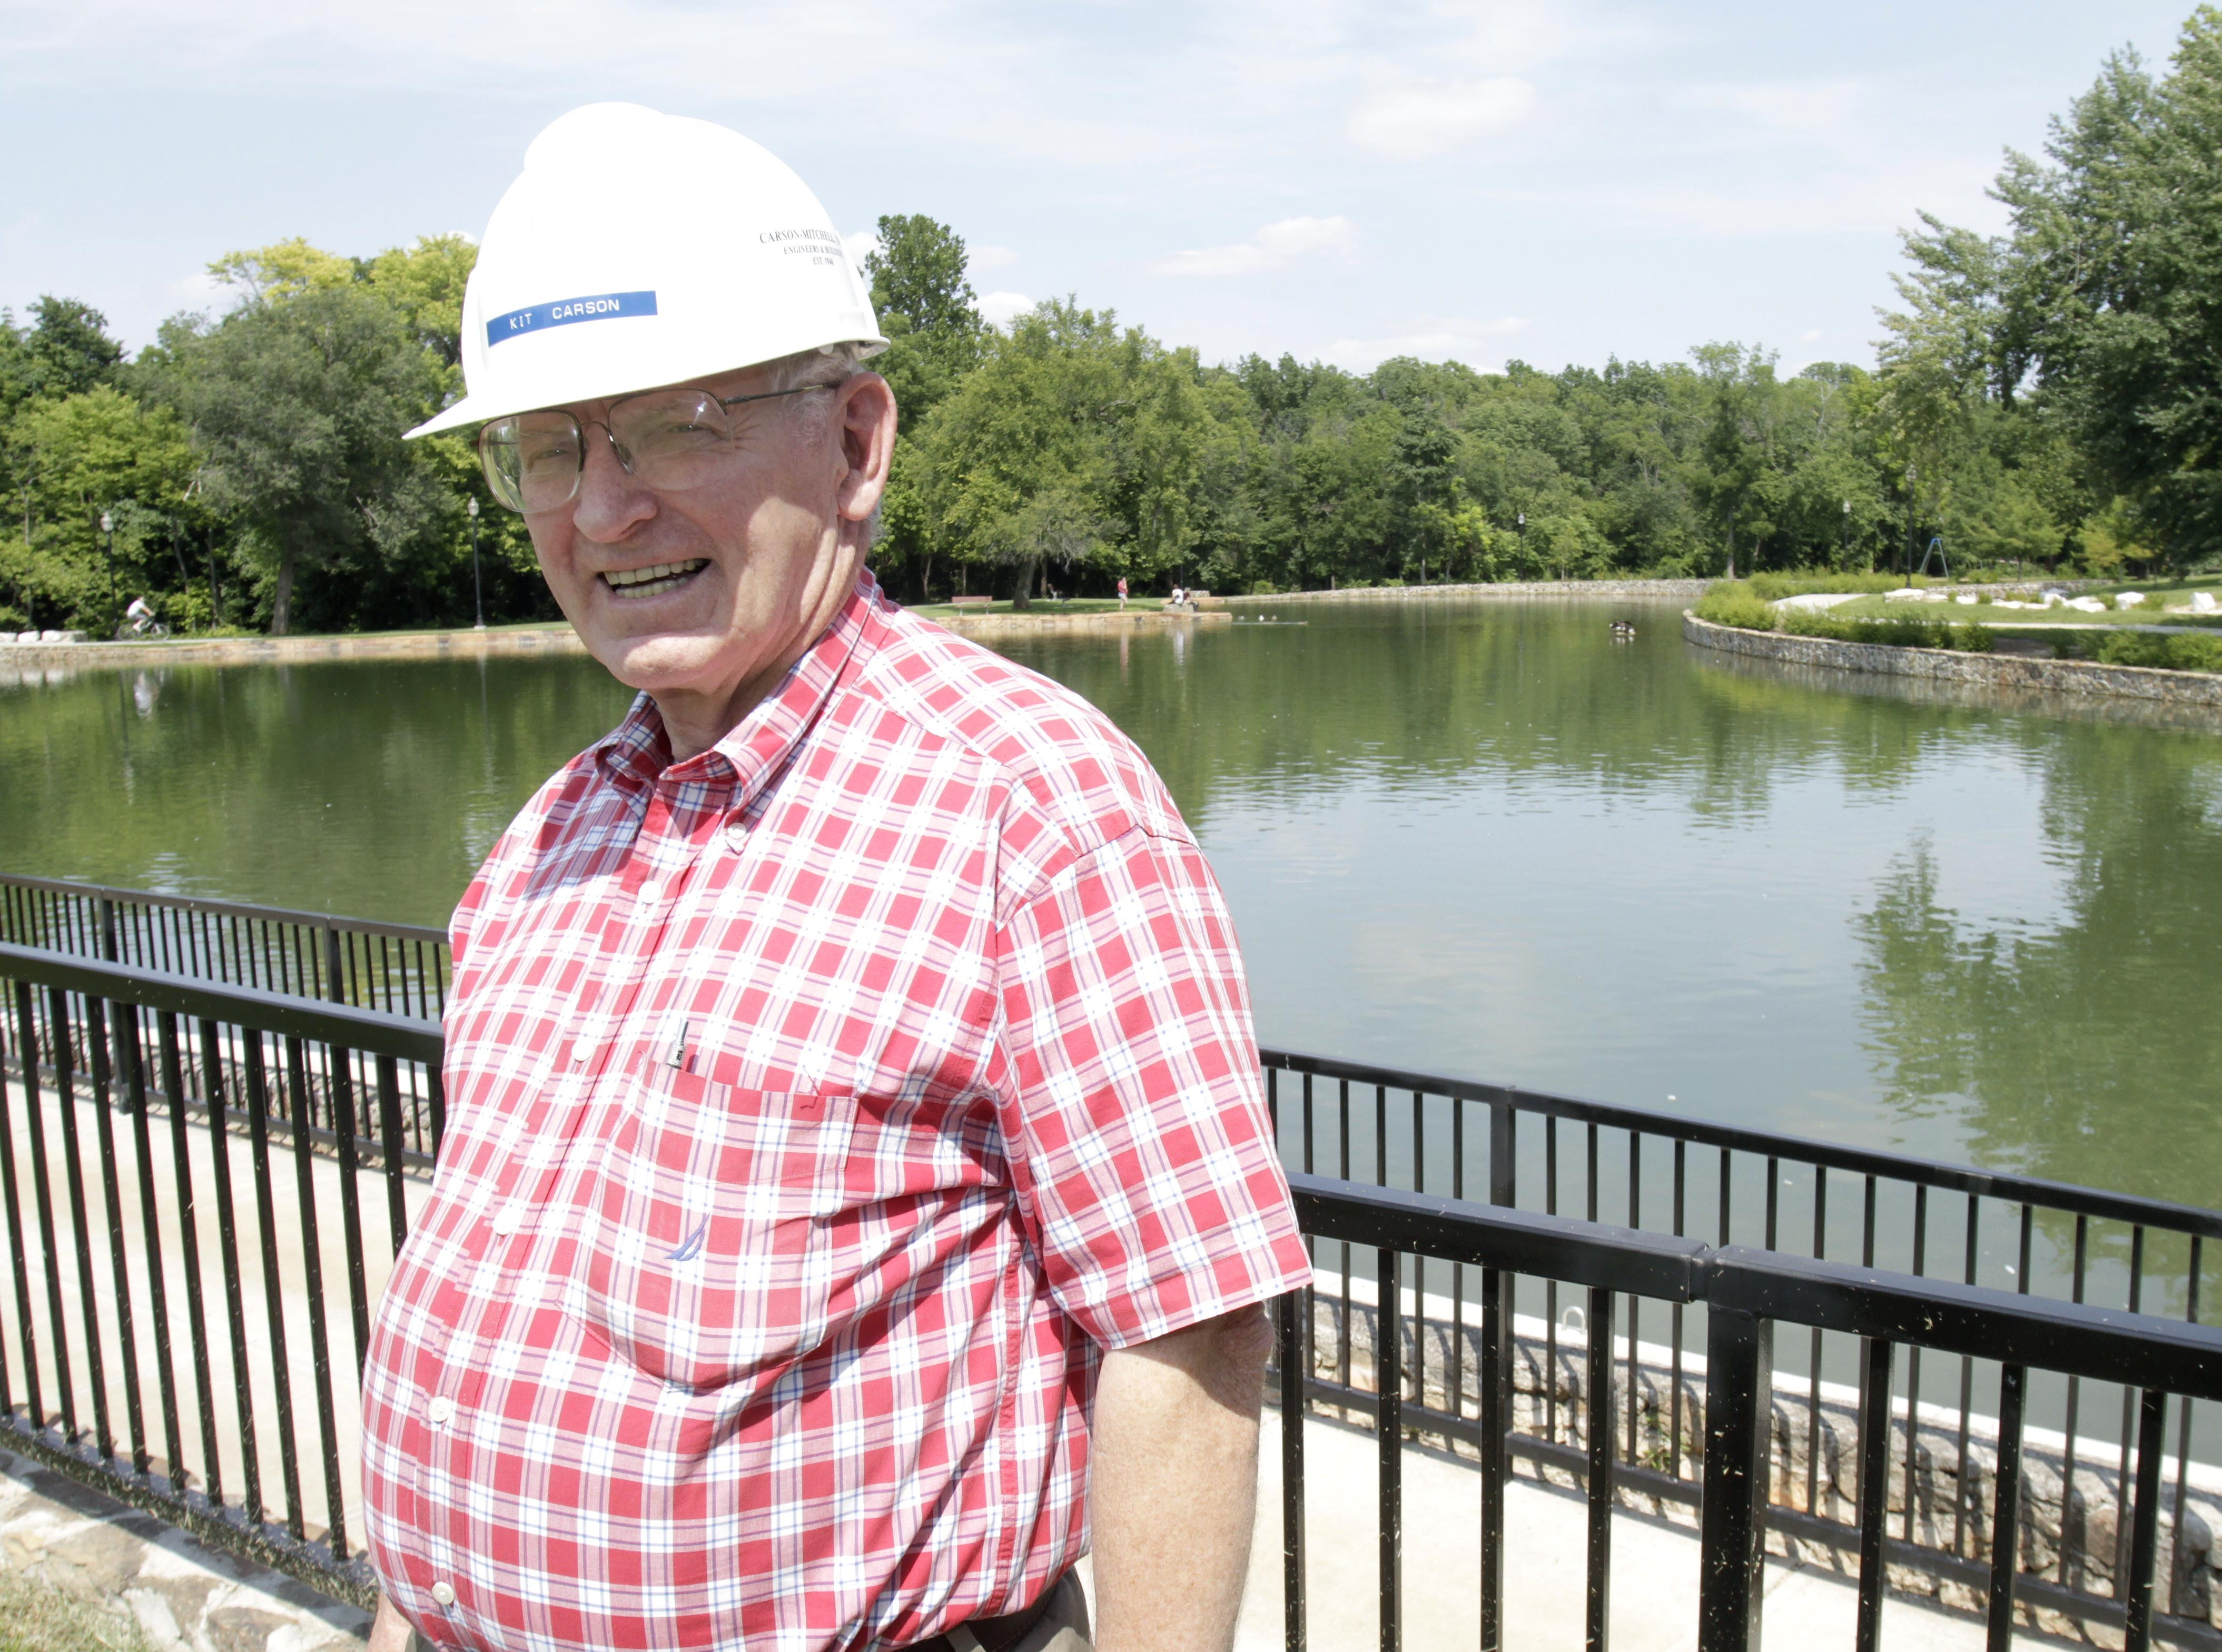 Kit Carson, the president of Carson-Mitchell, Inc., the construction company that performed the renovations to Doling Park. Photo from Aug. 25, 2013.